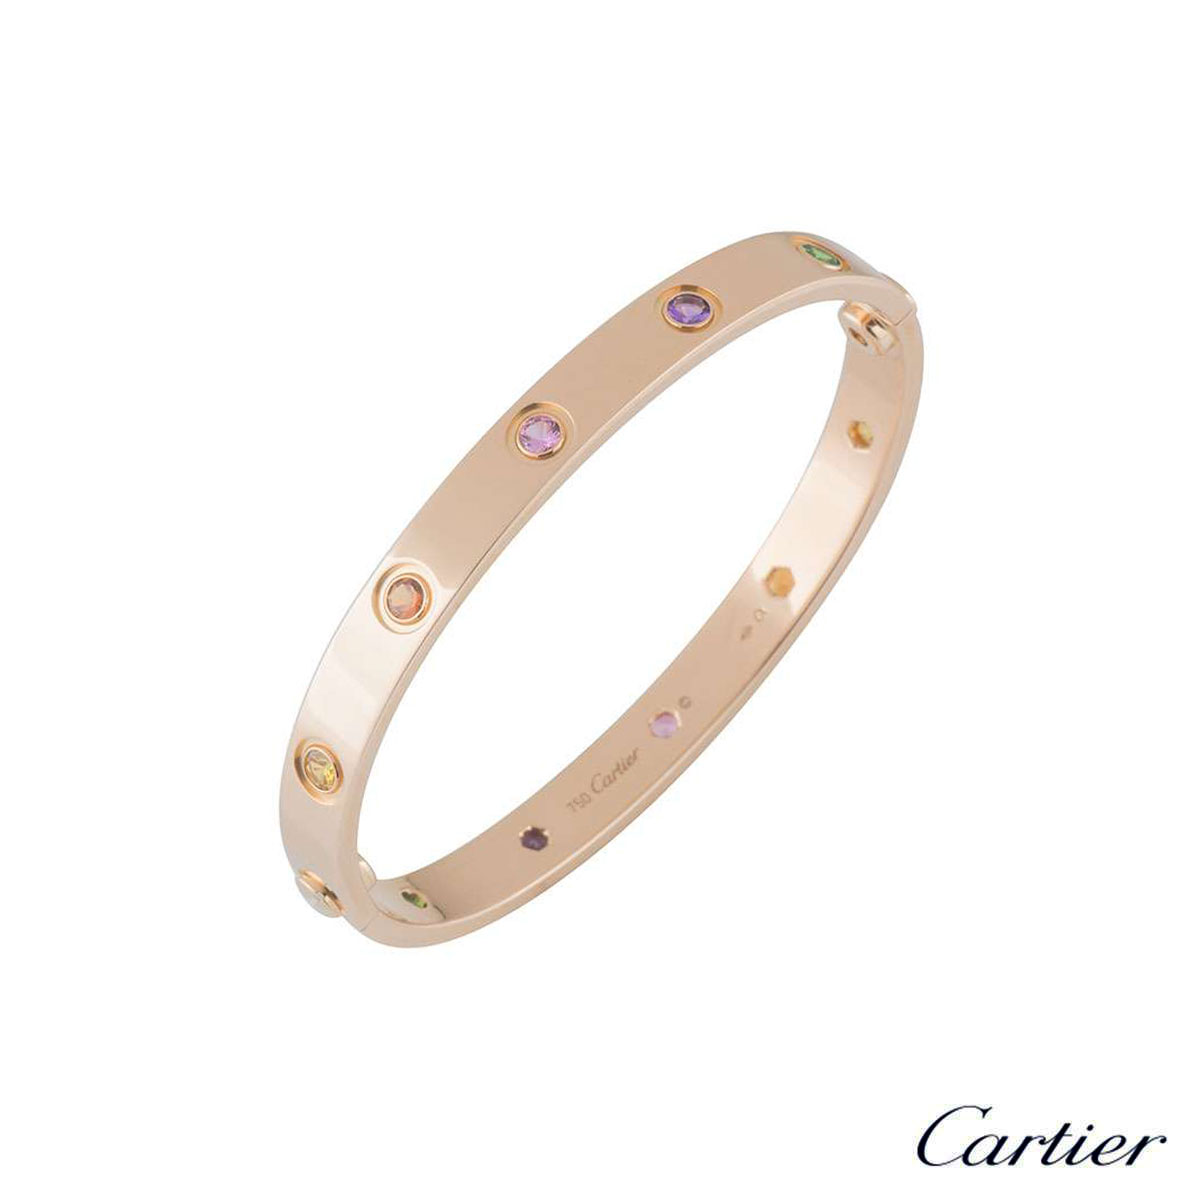 Cartier Rose Gold Coloured Stones Love Bracelet Size 17 B6036517